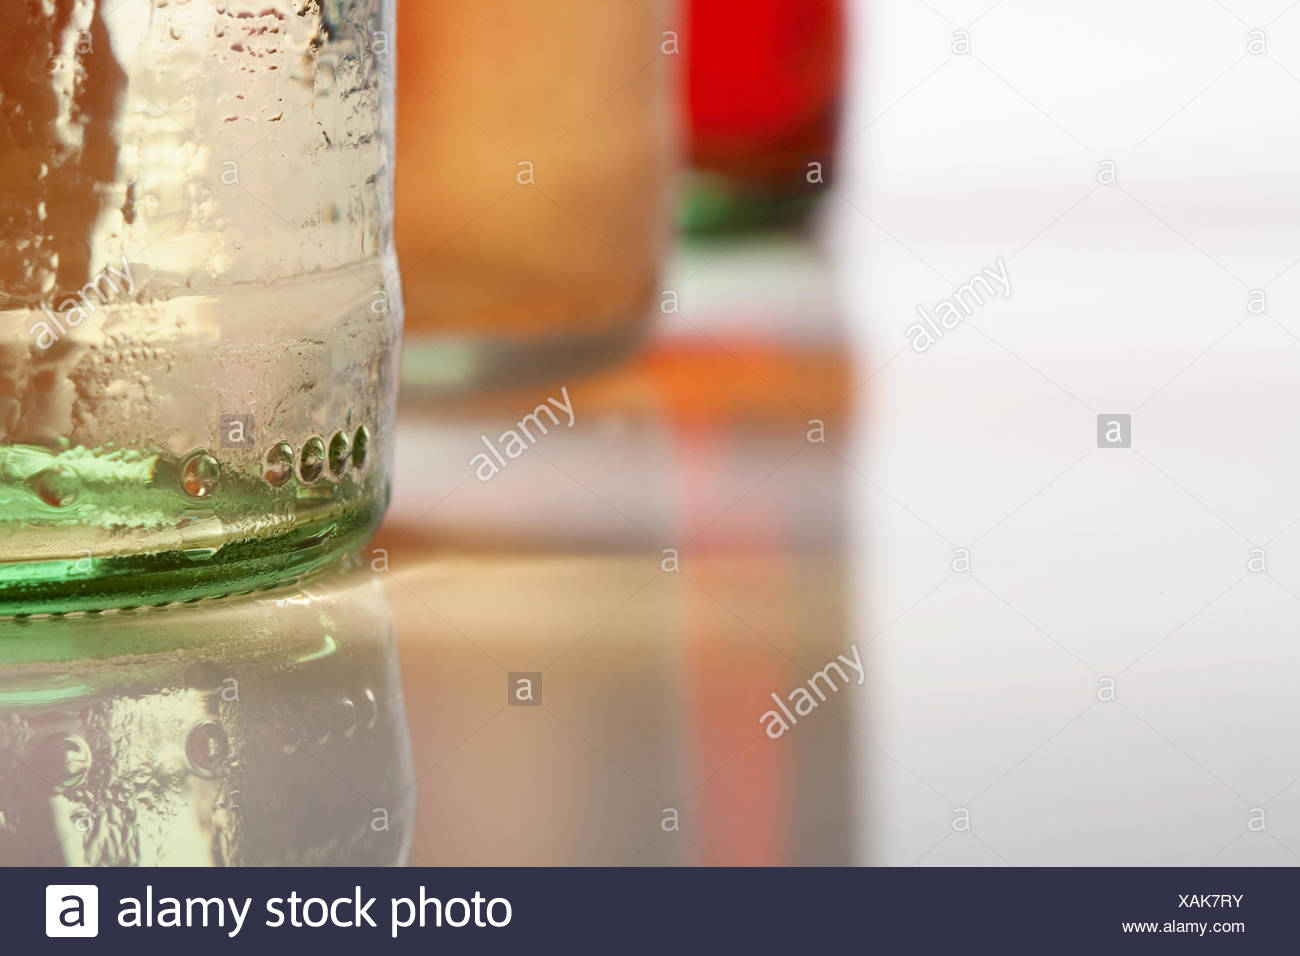 Three cool bottles of fresh beverages - Stock Image